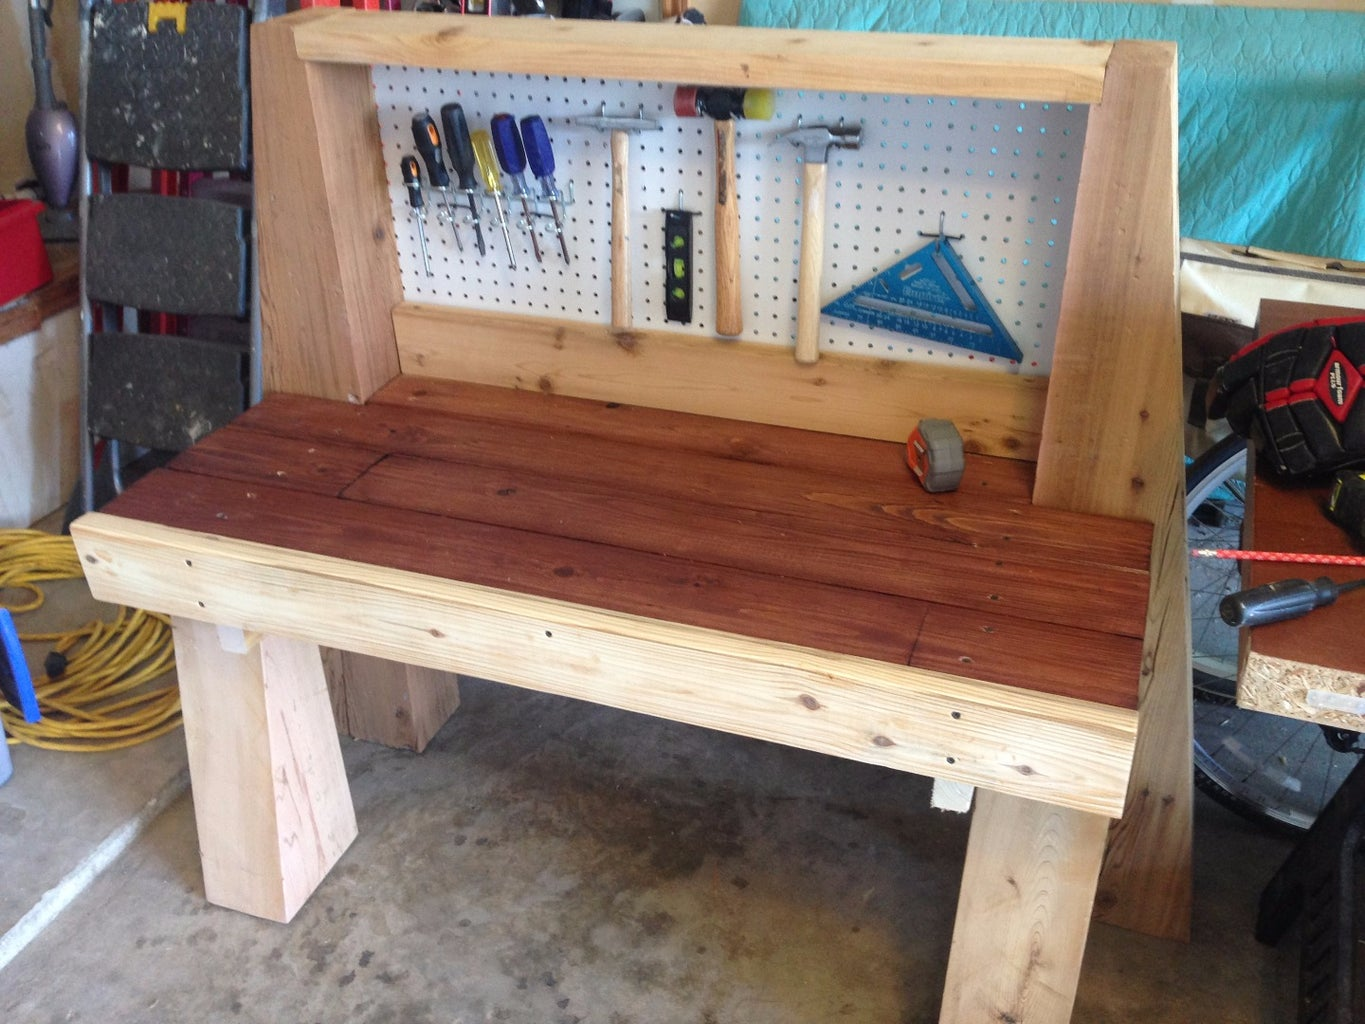 Install the Top Piece and Peg Board